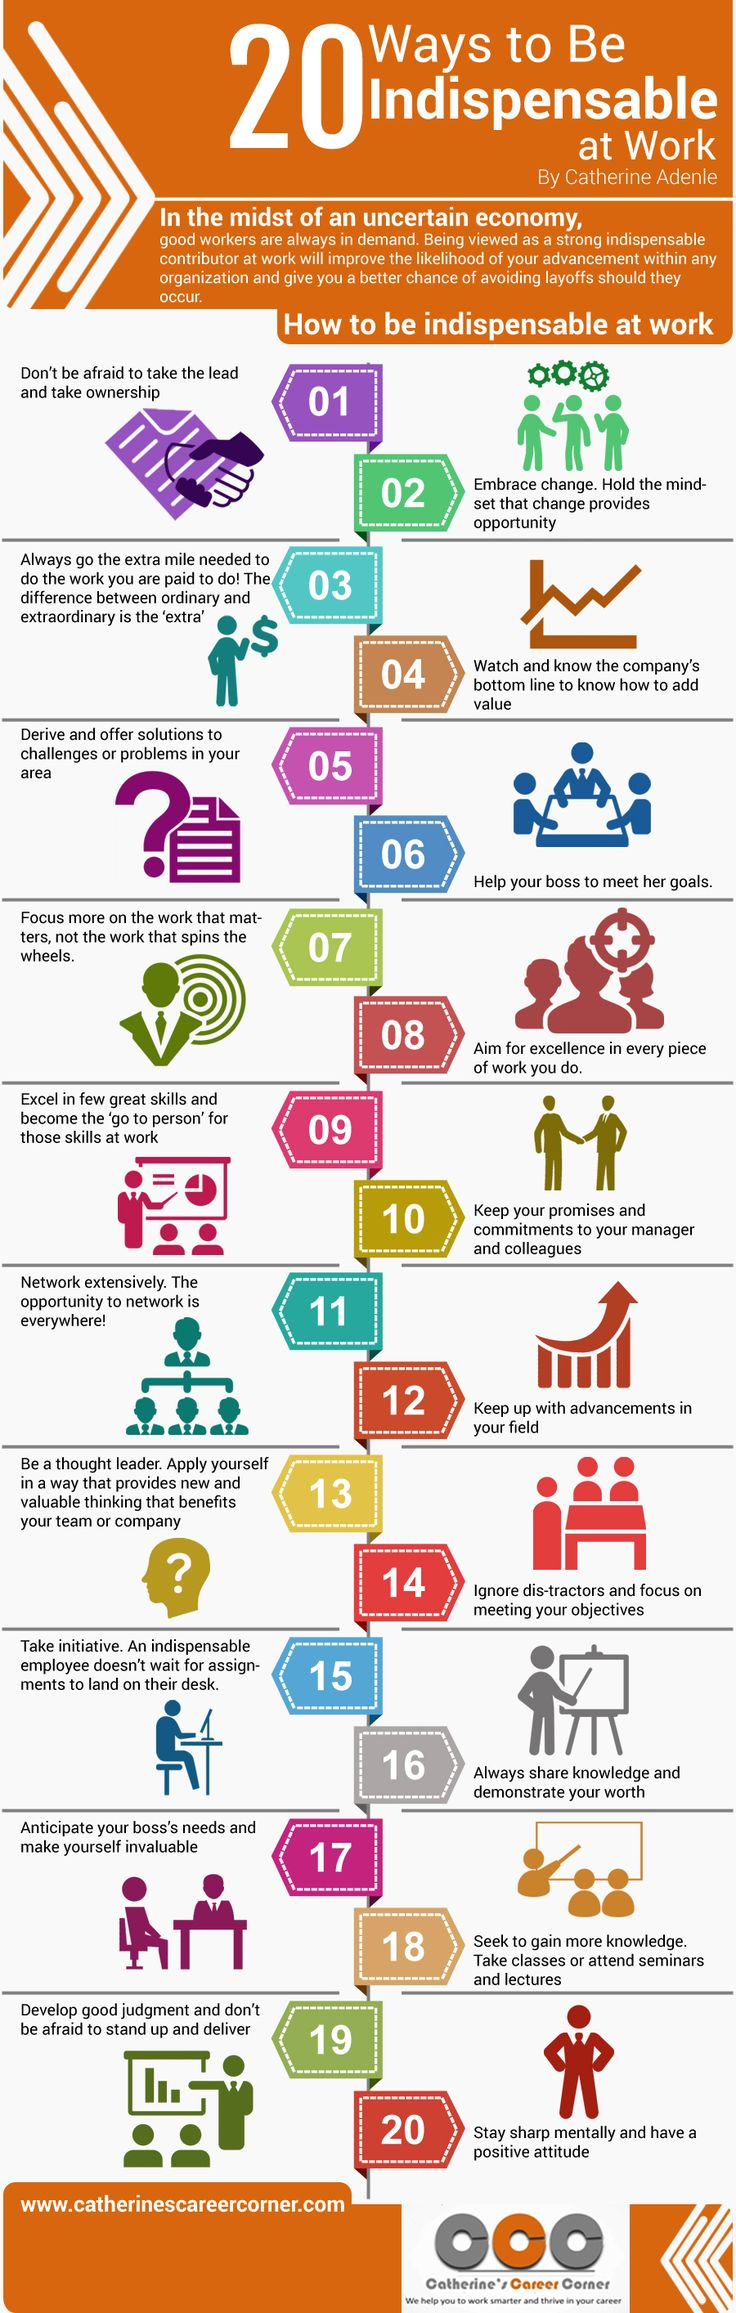 20 ways to be indispensable at work.